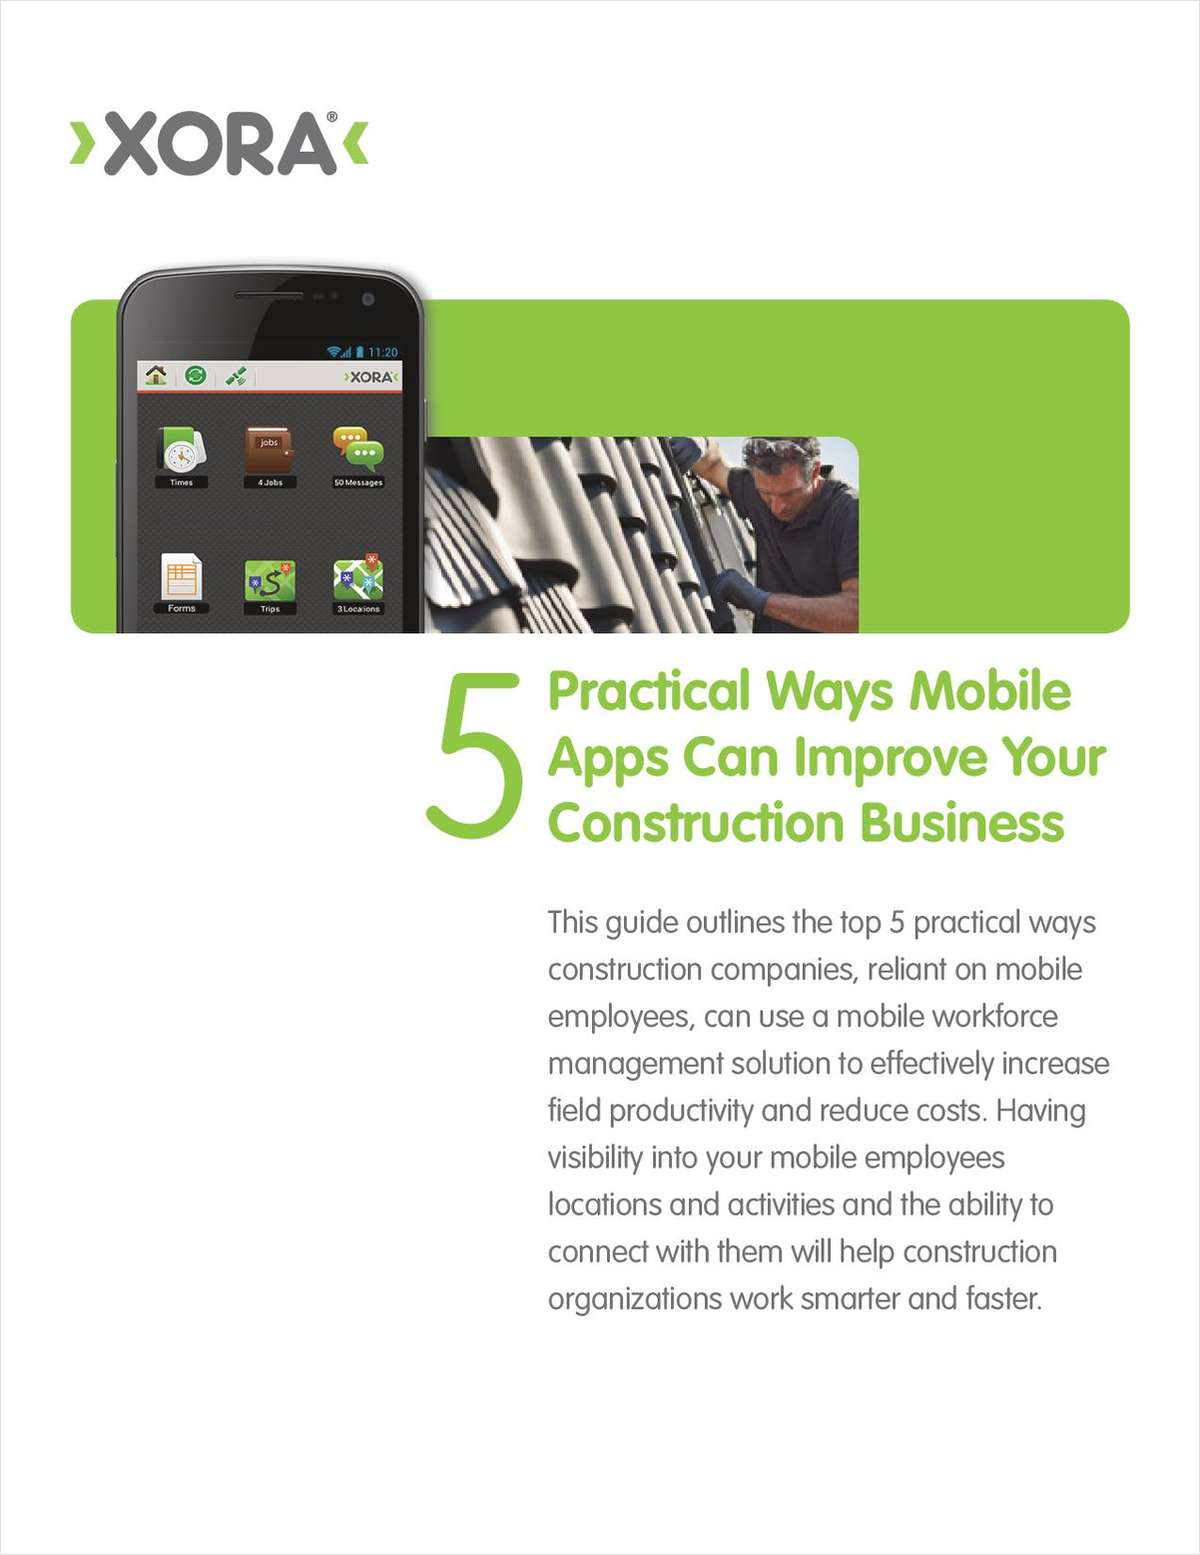 5 Practical Ways Apps Can Streamline Your Construction Business